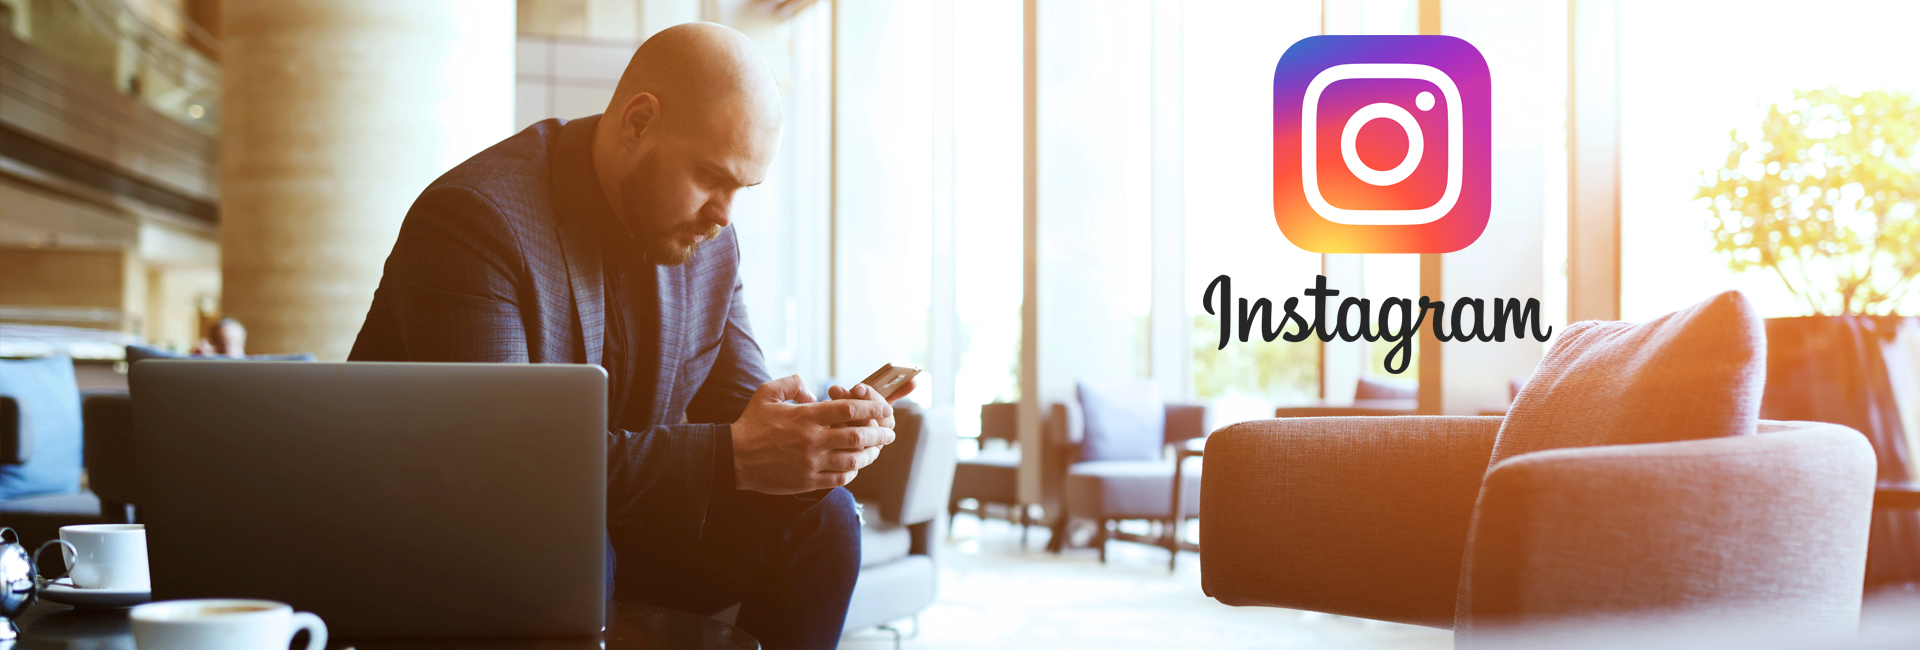 instagram live streaming to instagram webcast production igtv filming company